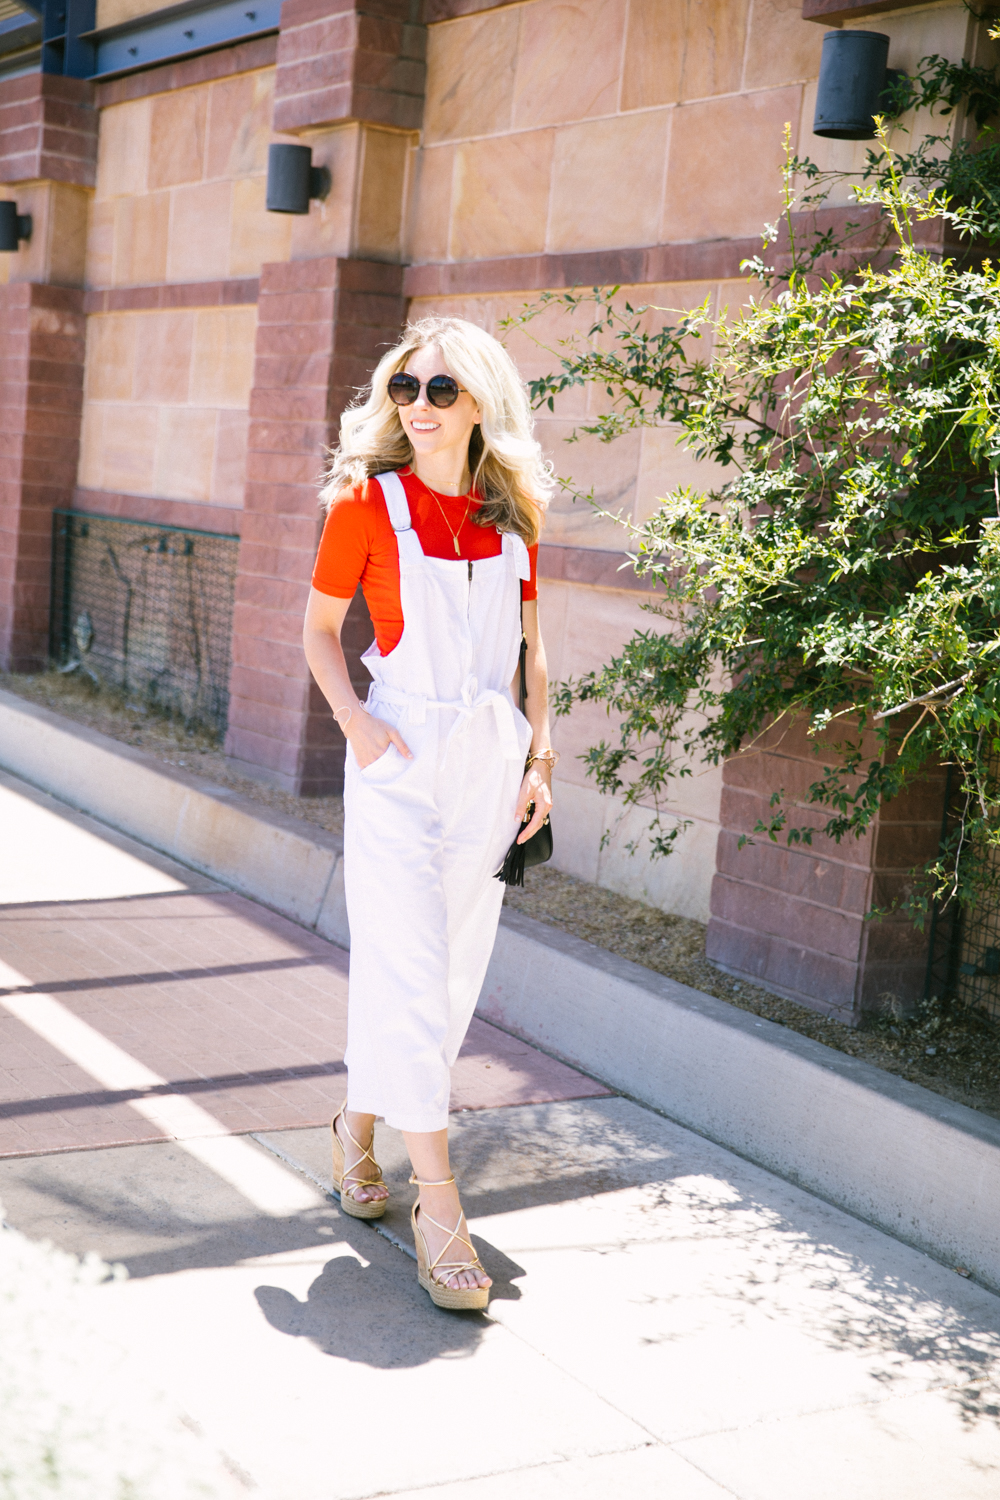 All About Style Blogger JayCee of popular Las Vegas fashion blogger, Life of a Sister